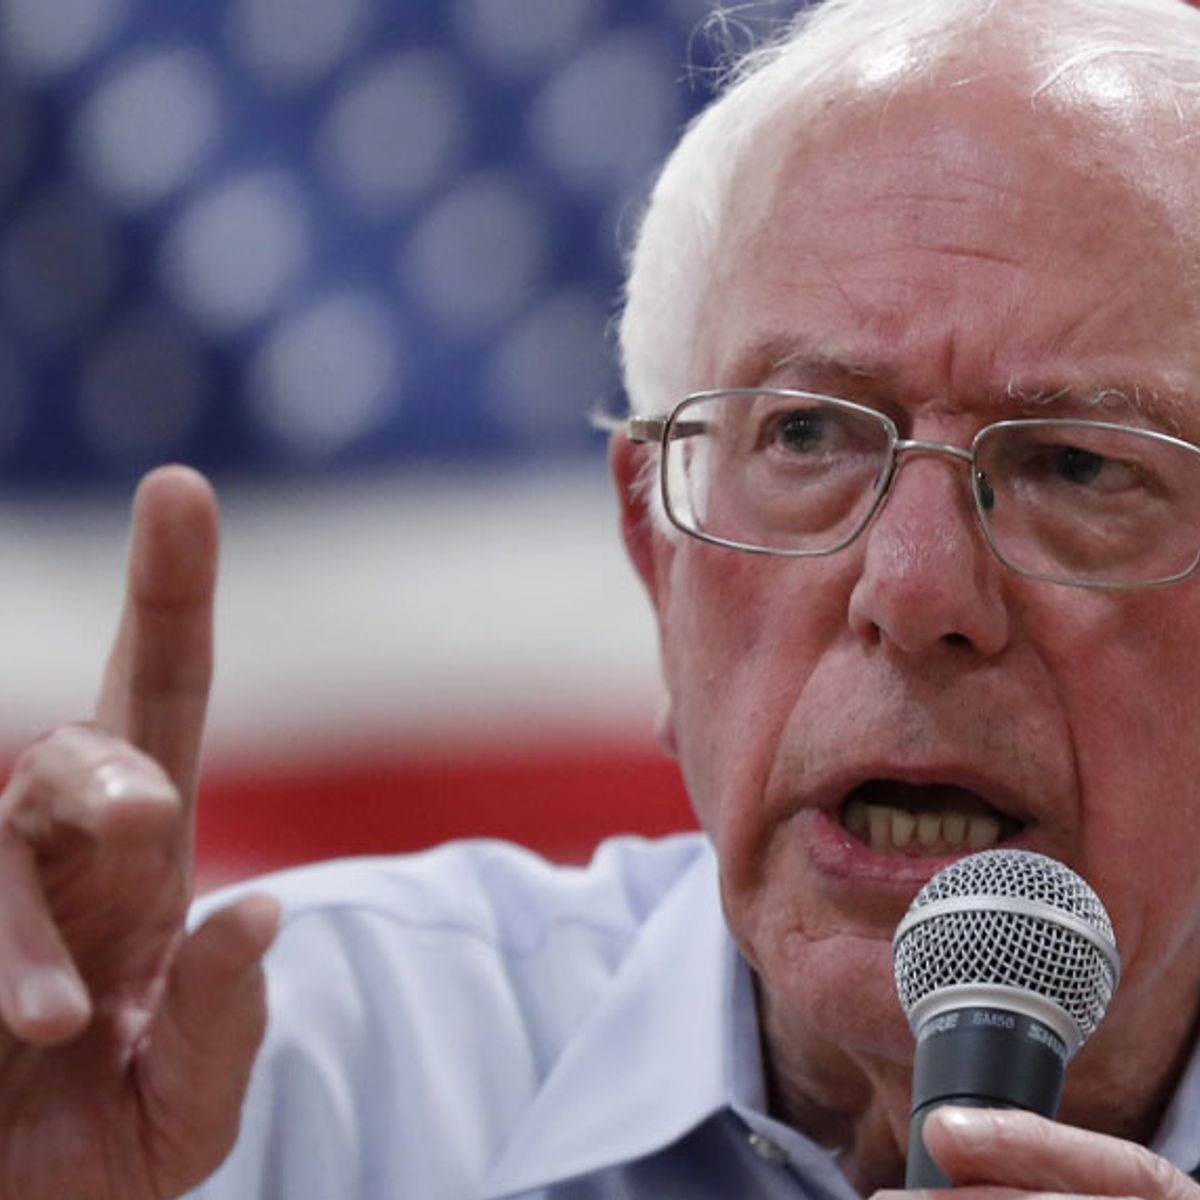 """I'm willing to fight for someone I don't know"": Sanders speech becomes viral rallying cry"